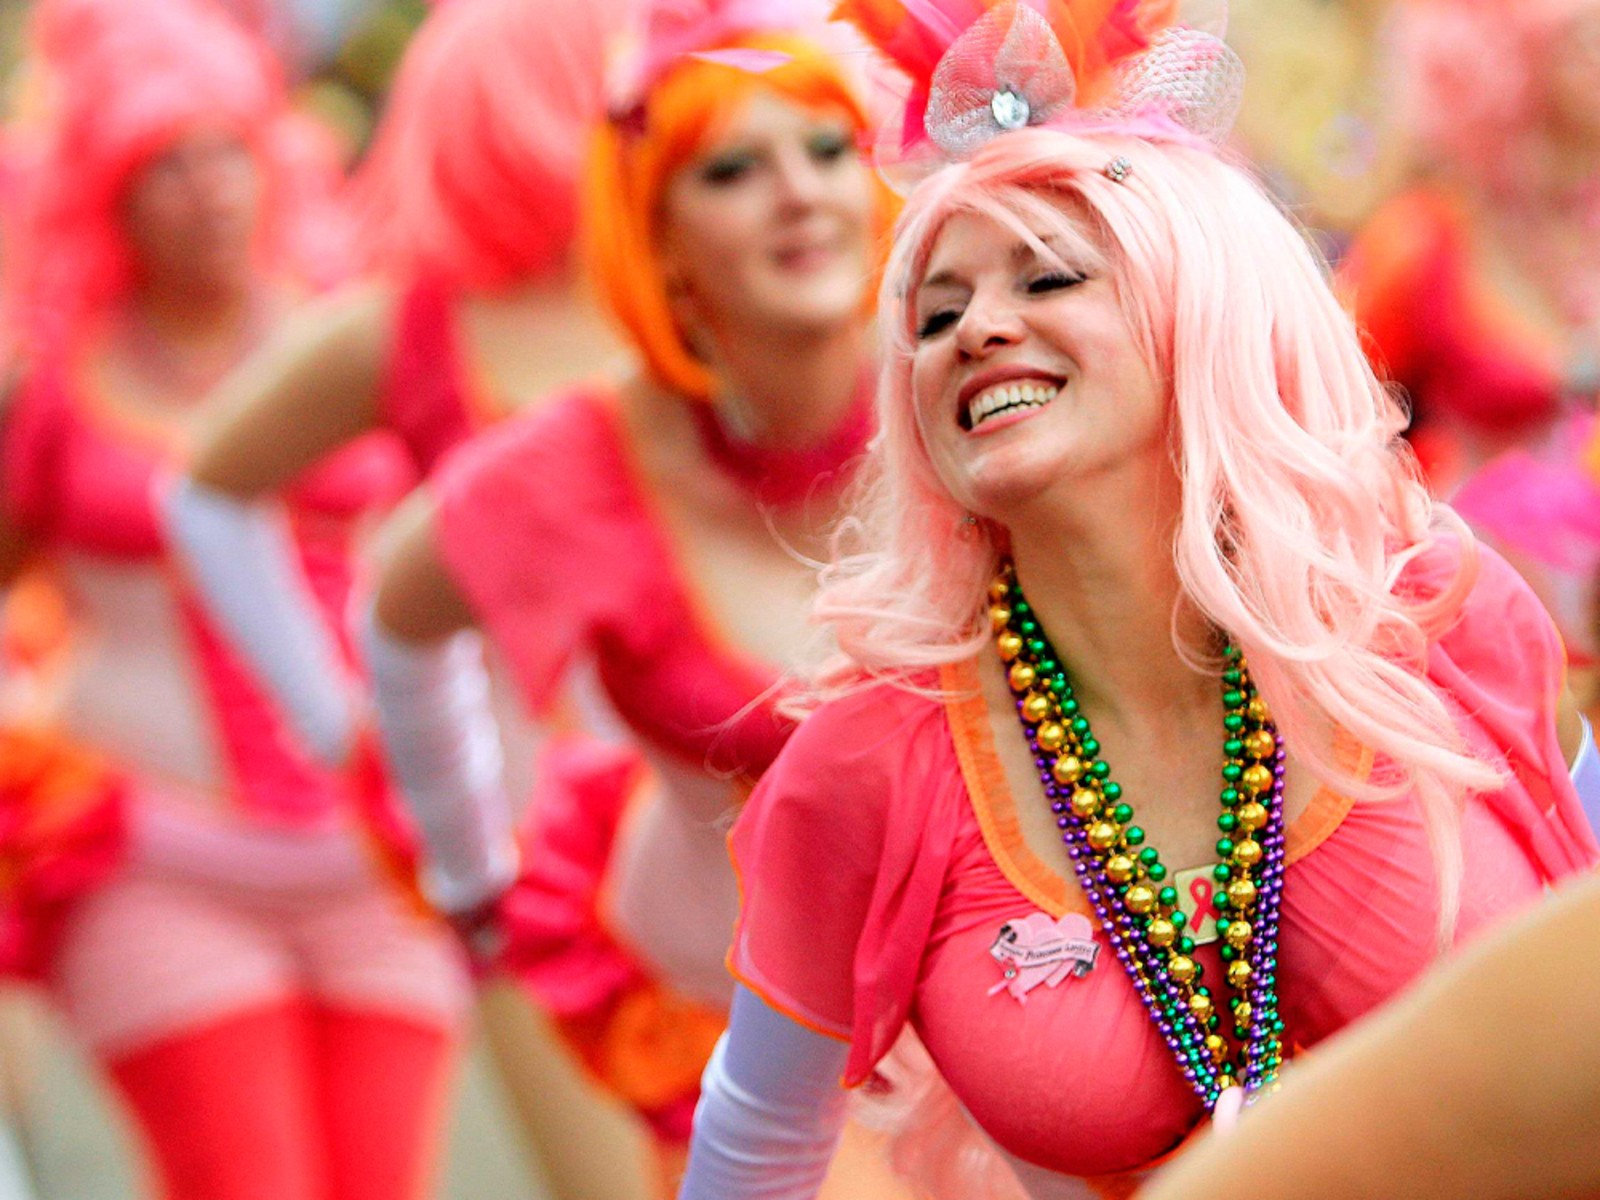 Image: Members of the Pussyfooters Marching Club parade along with the Krewe of Toath along St. Charles Avenue during the weekend before Mardi Gras in New Orleans